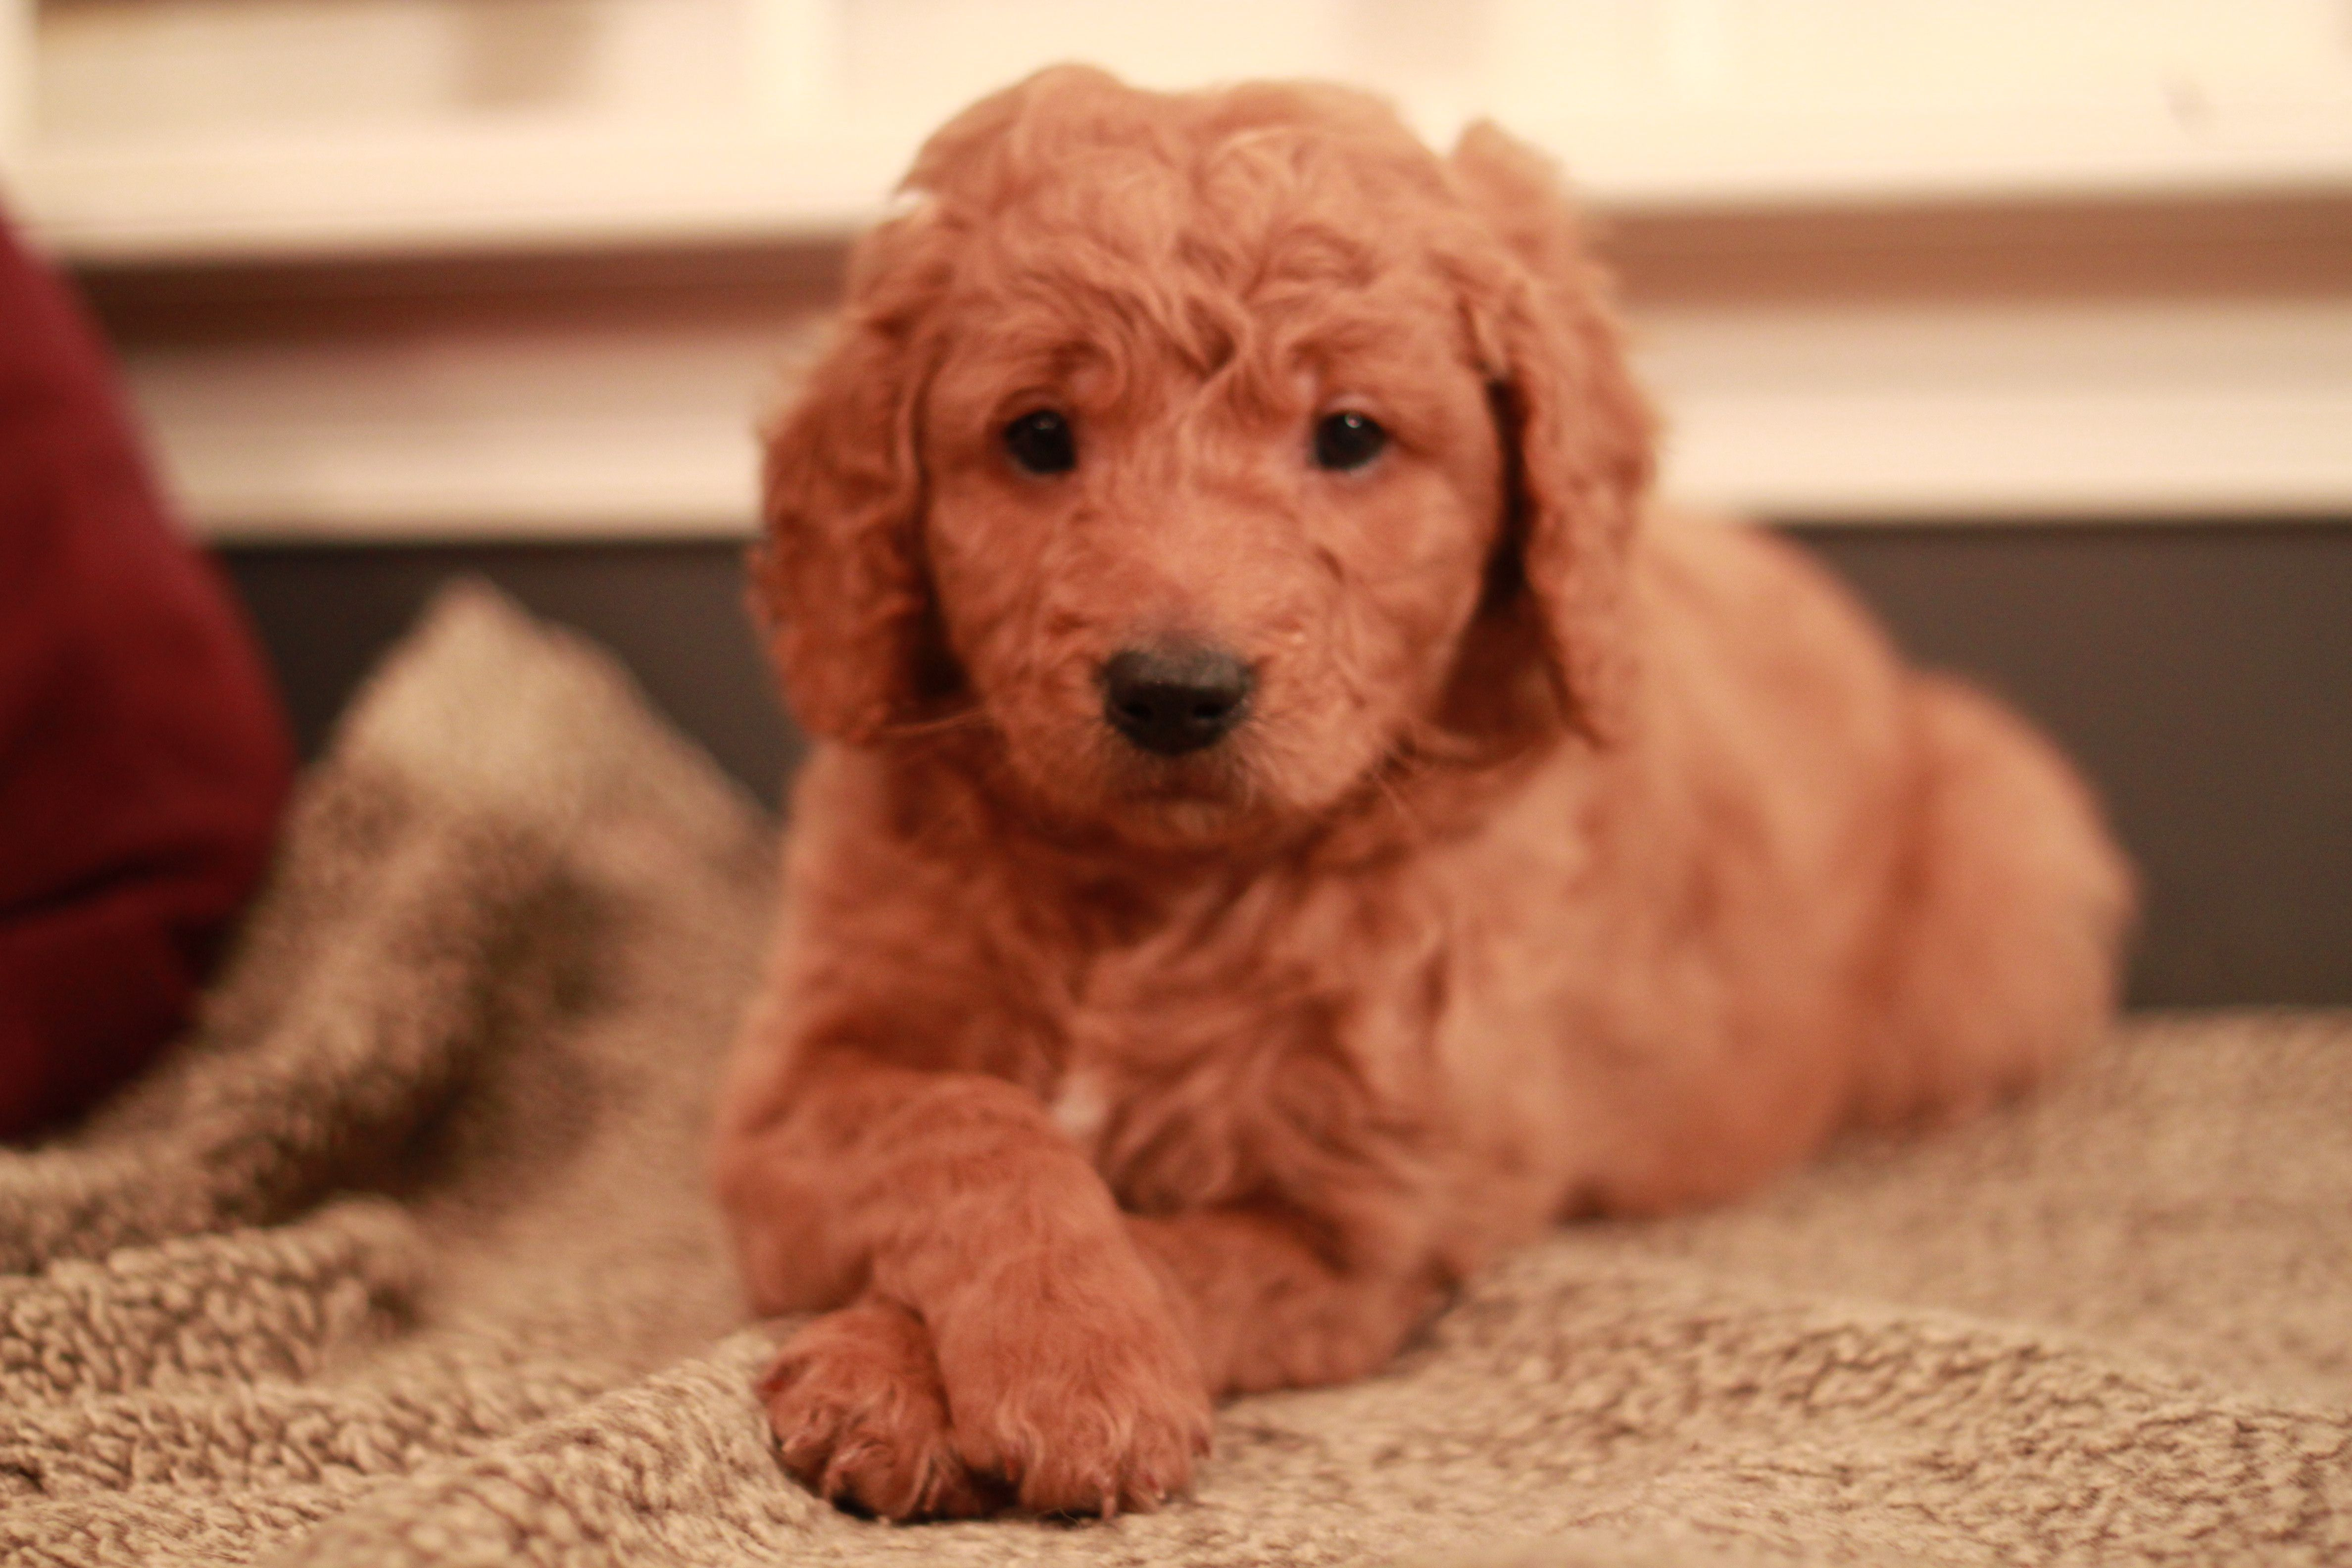 Teddy Red Goldendoodle Puppy At 6 Weeks Old From